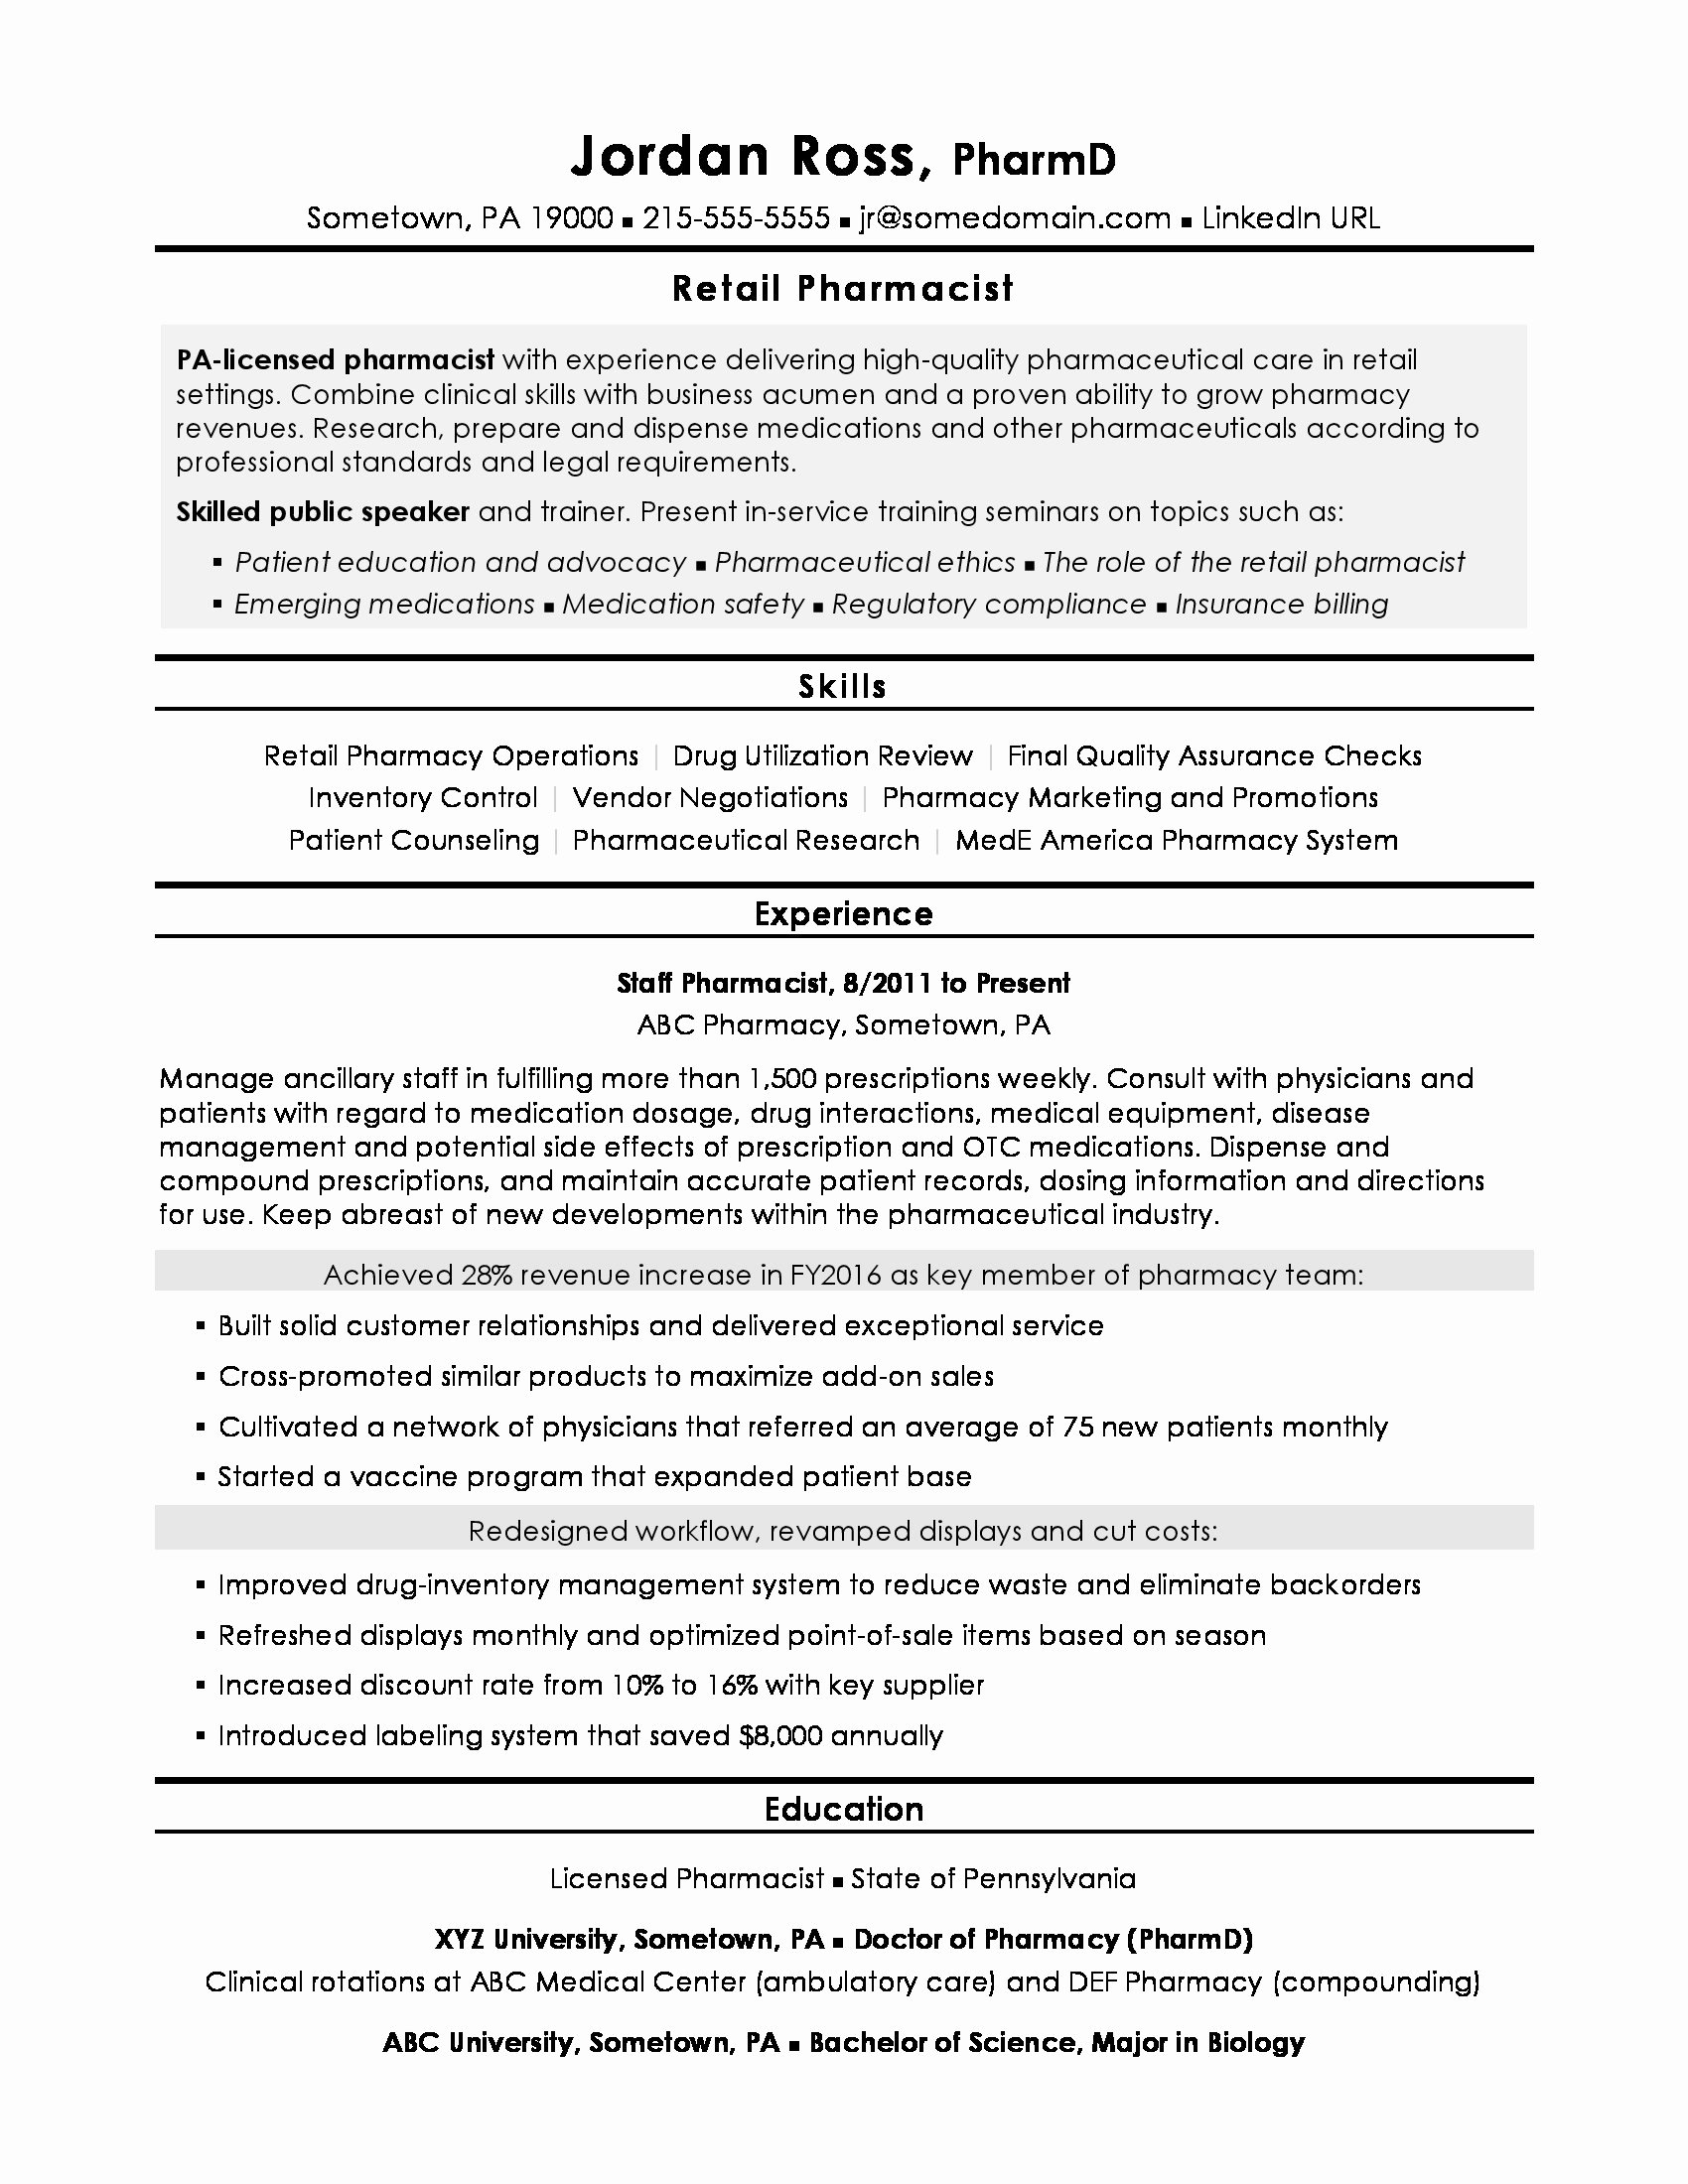 Pharmacy Curriculum Vitae Examples Lovely Pharmacist Resume Sample